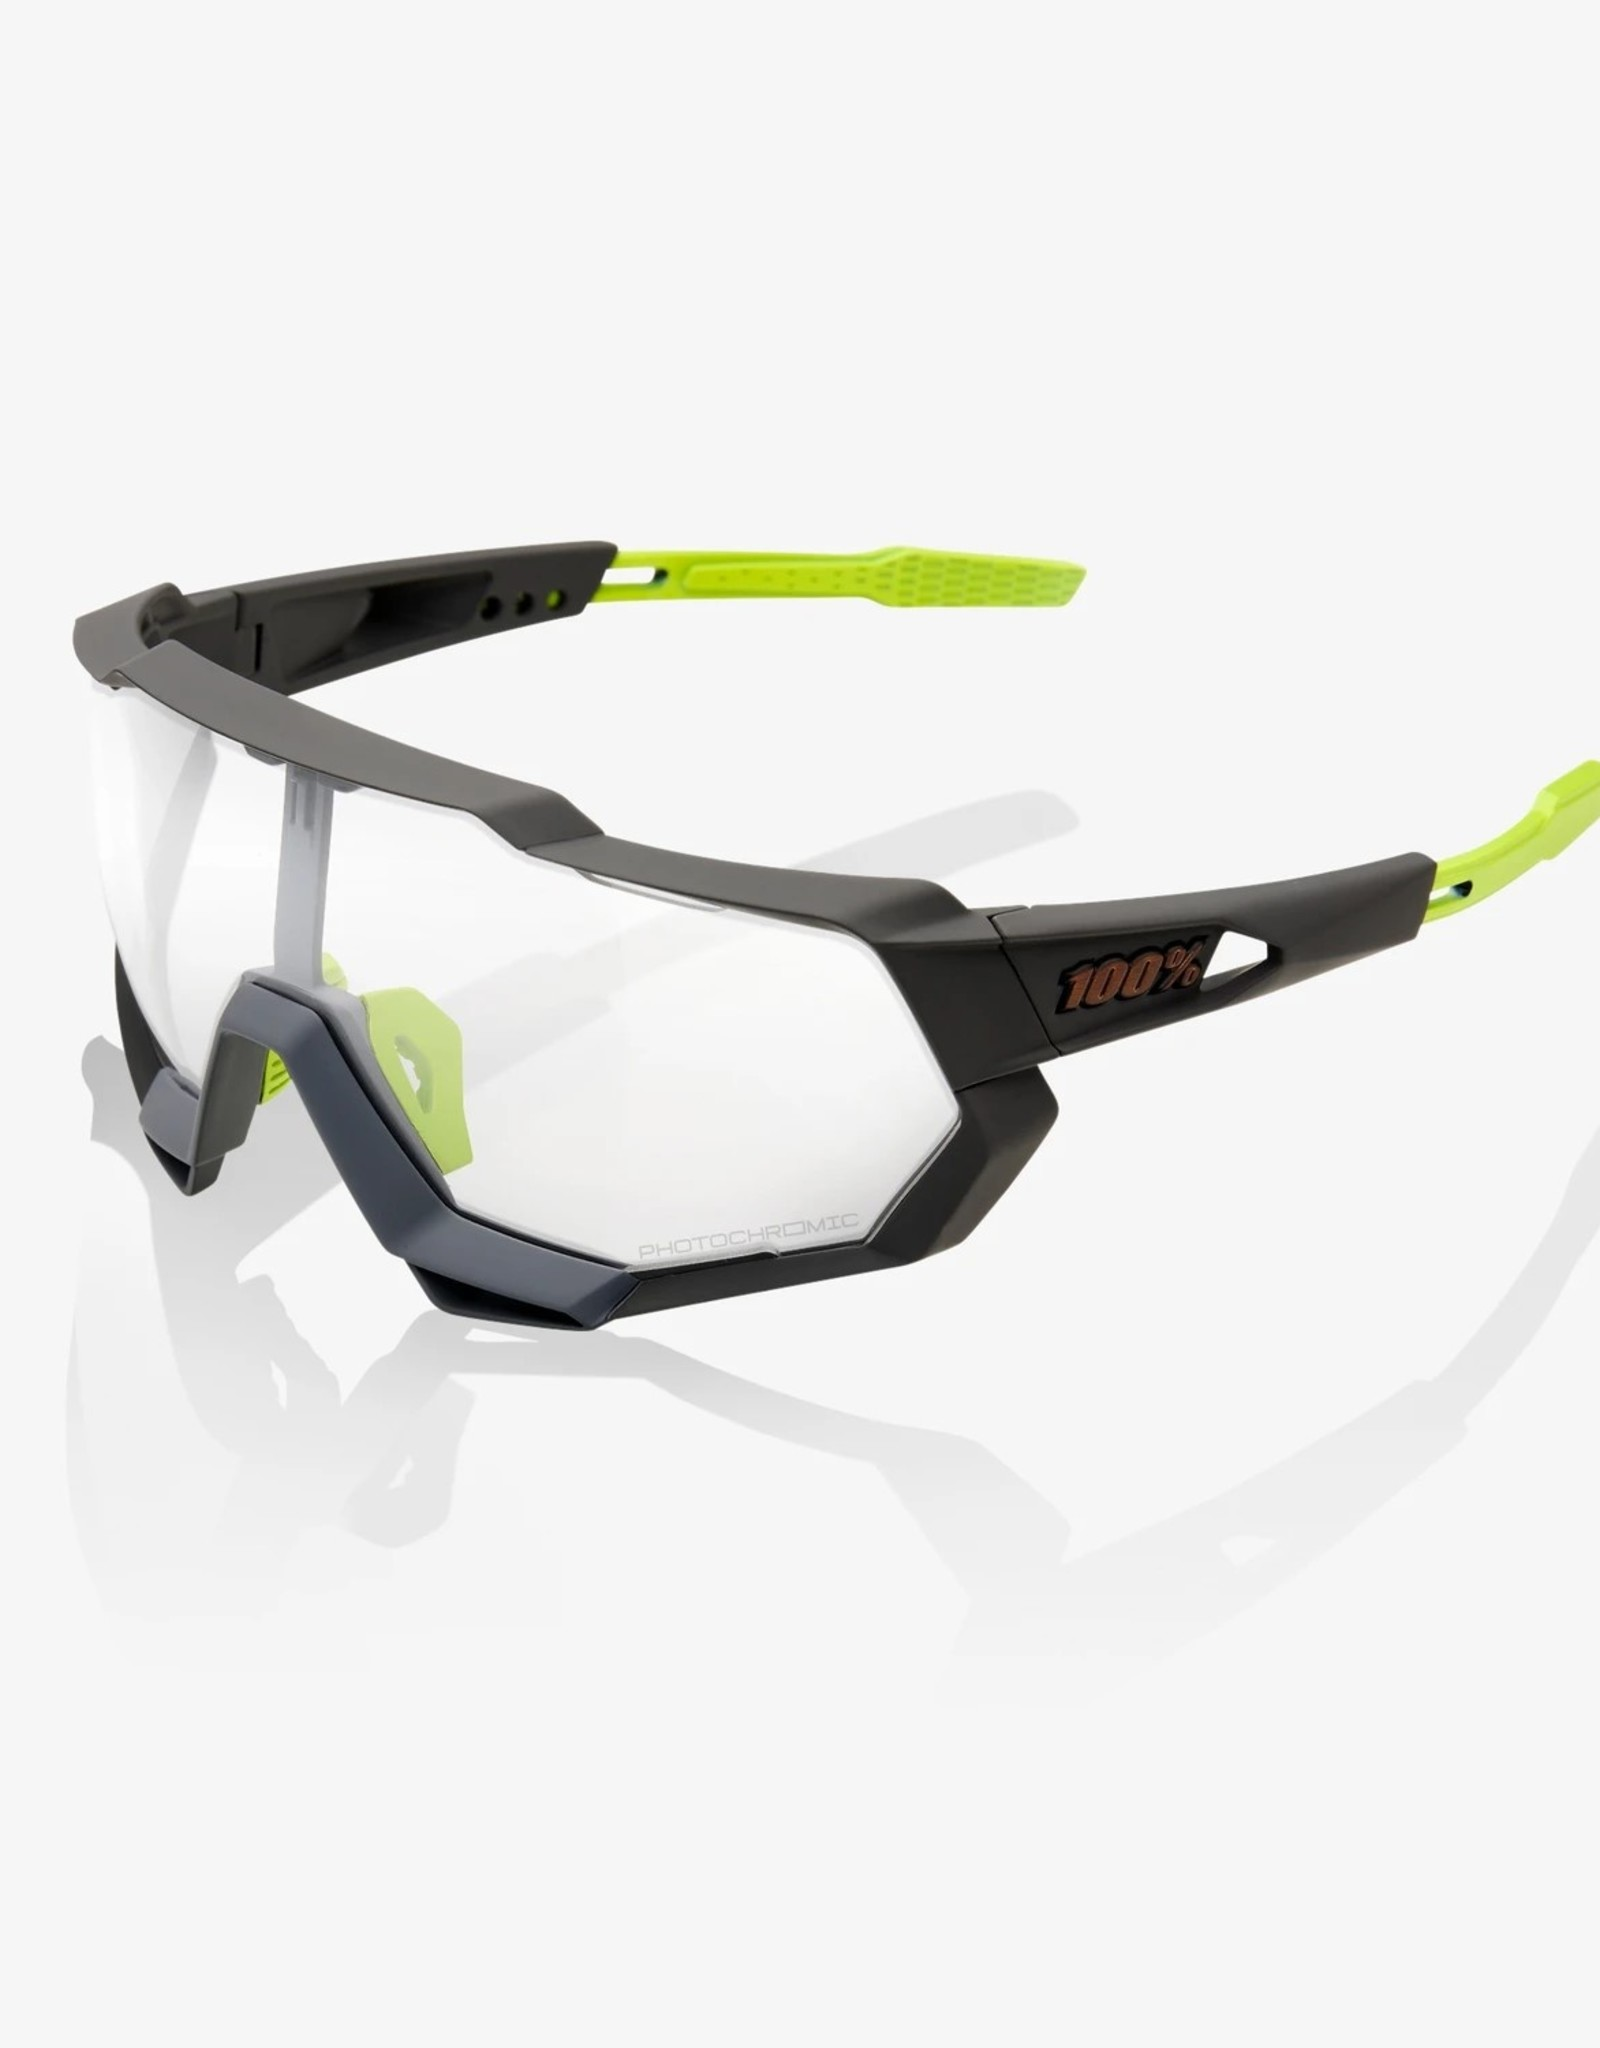 100 Percent LUNETTES 100% SpeedTrap, Soft Tact Cool Grey frame - Photochromatic Lens